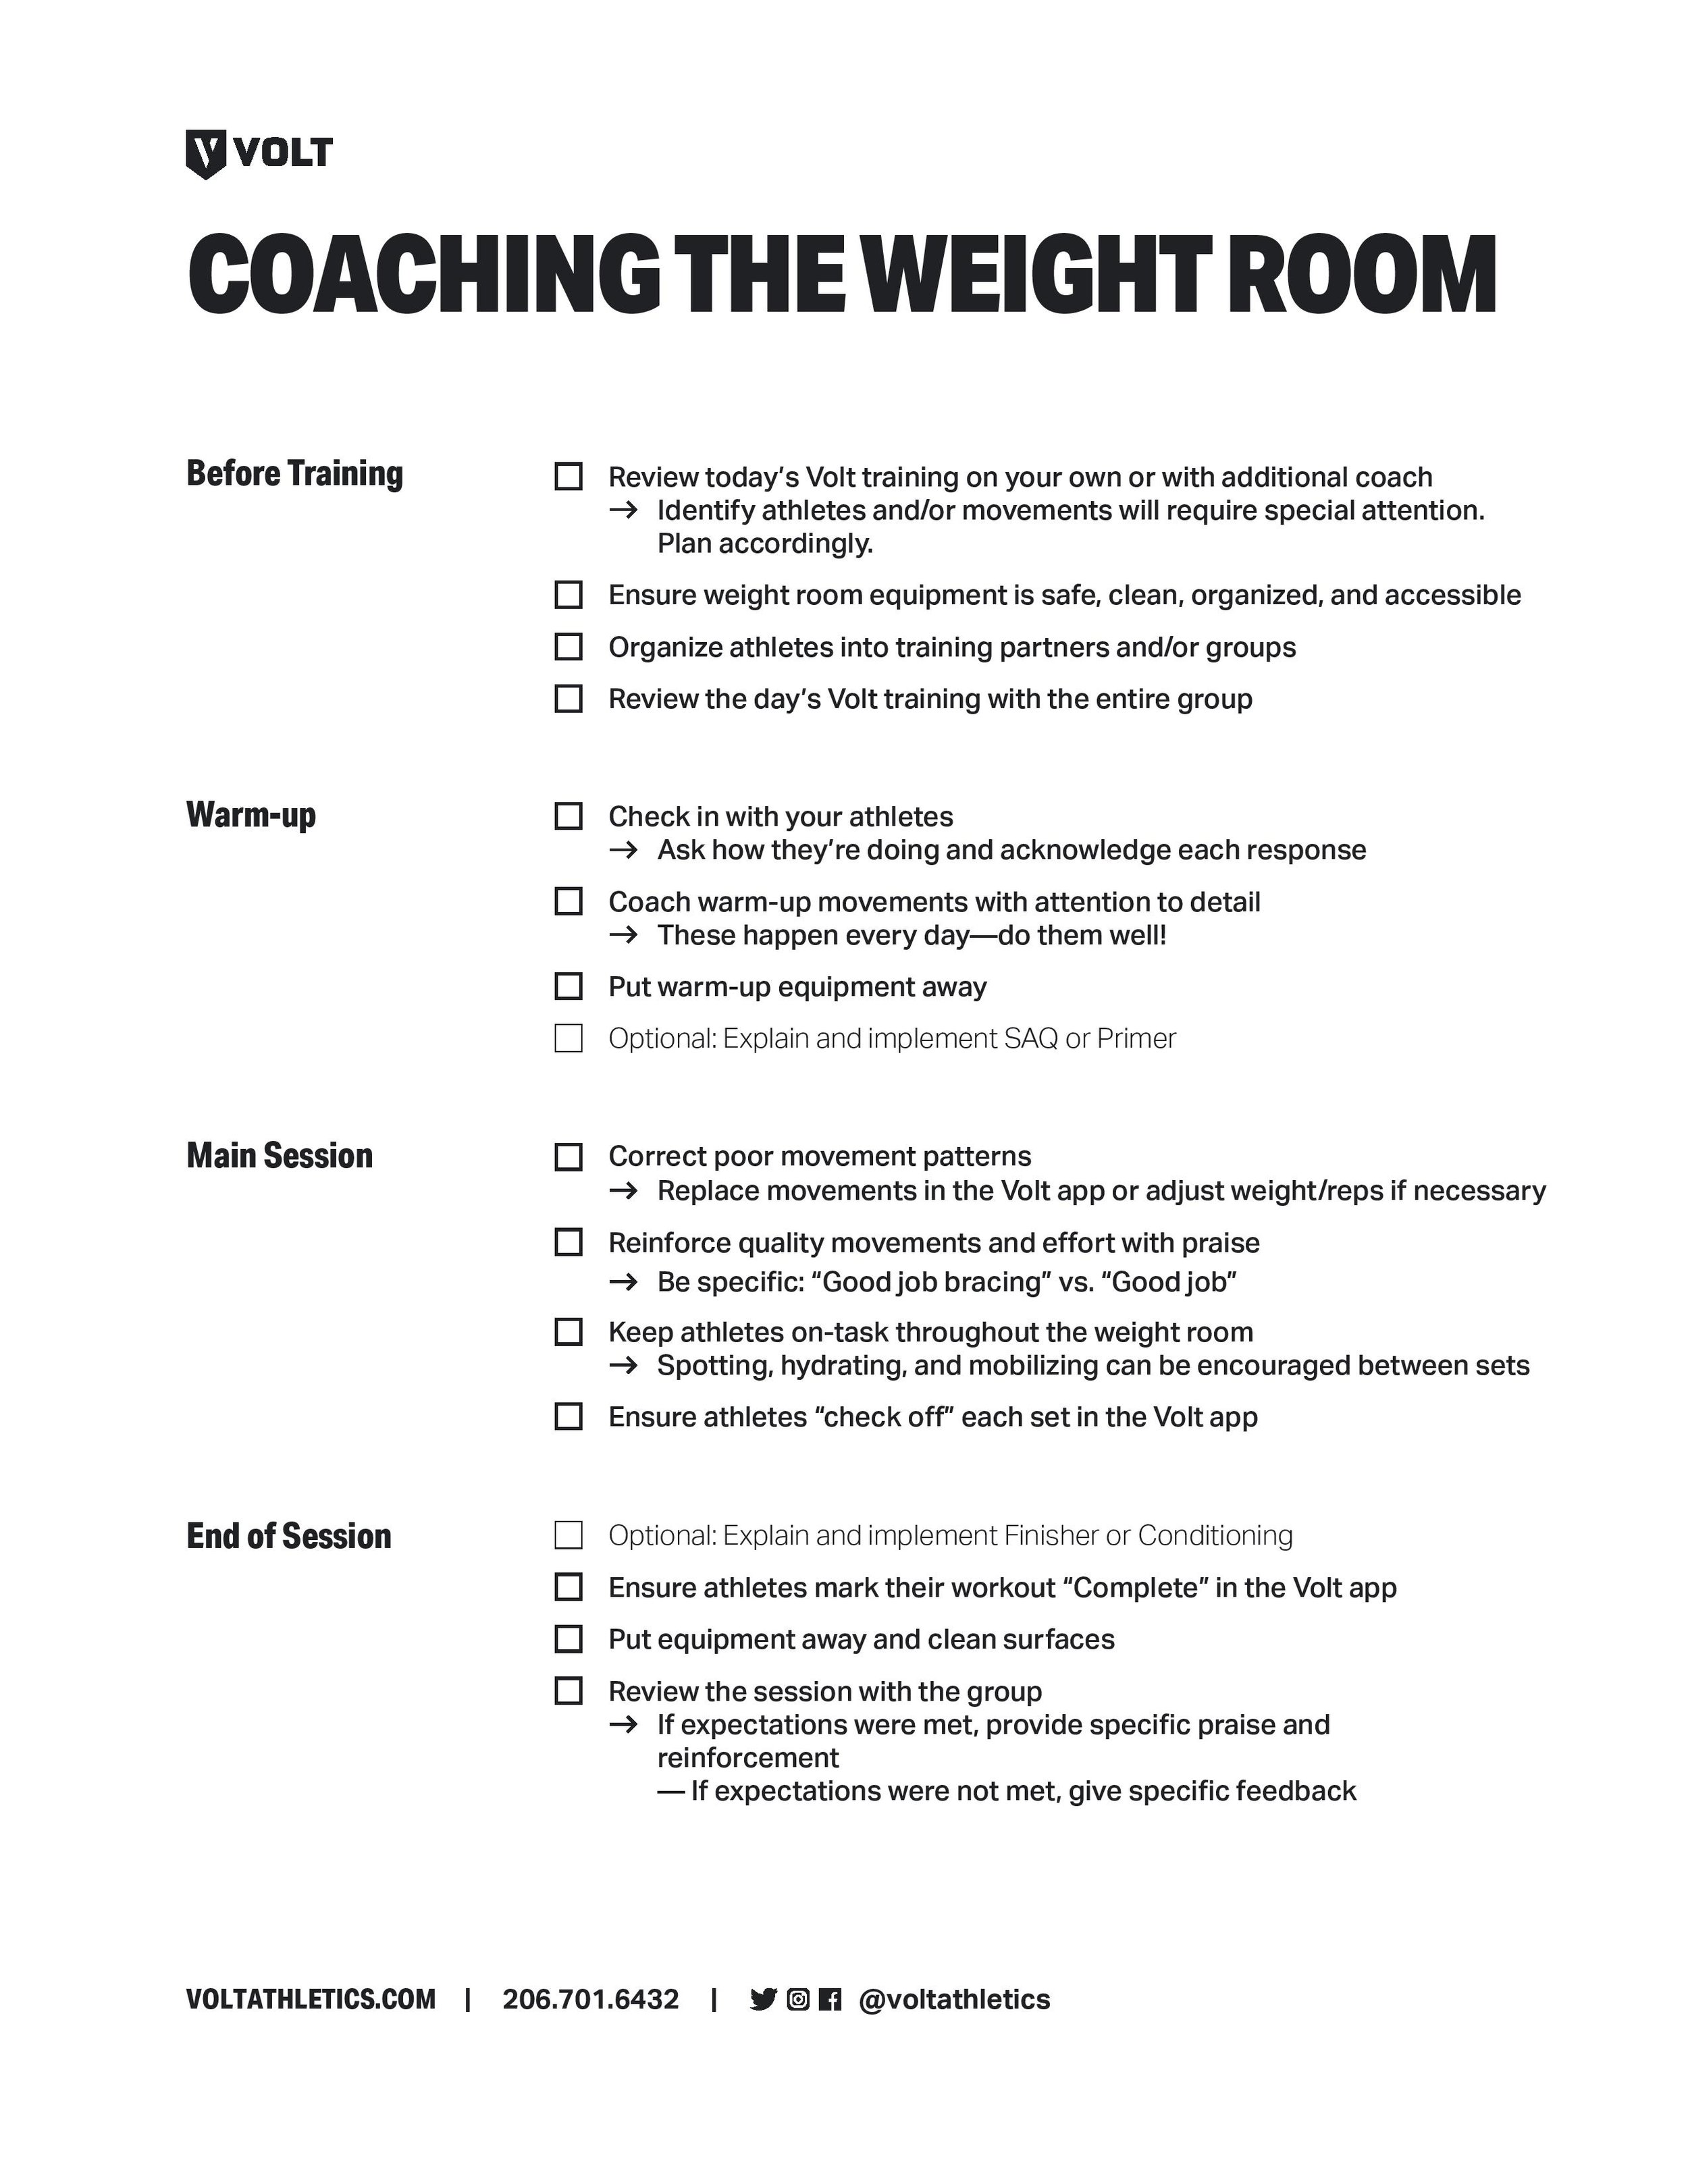 Coaching the Weight Room Checklist (1) (2)-page-001.jpg